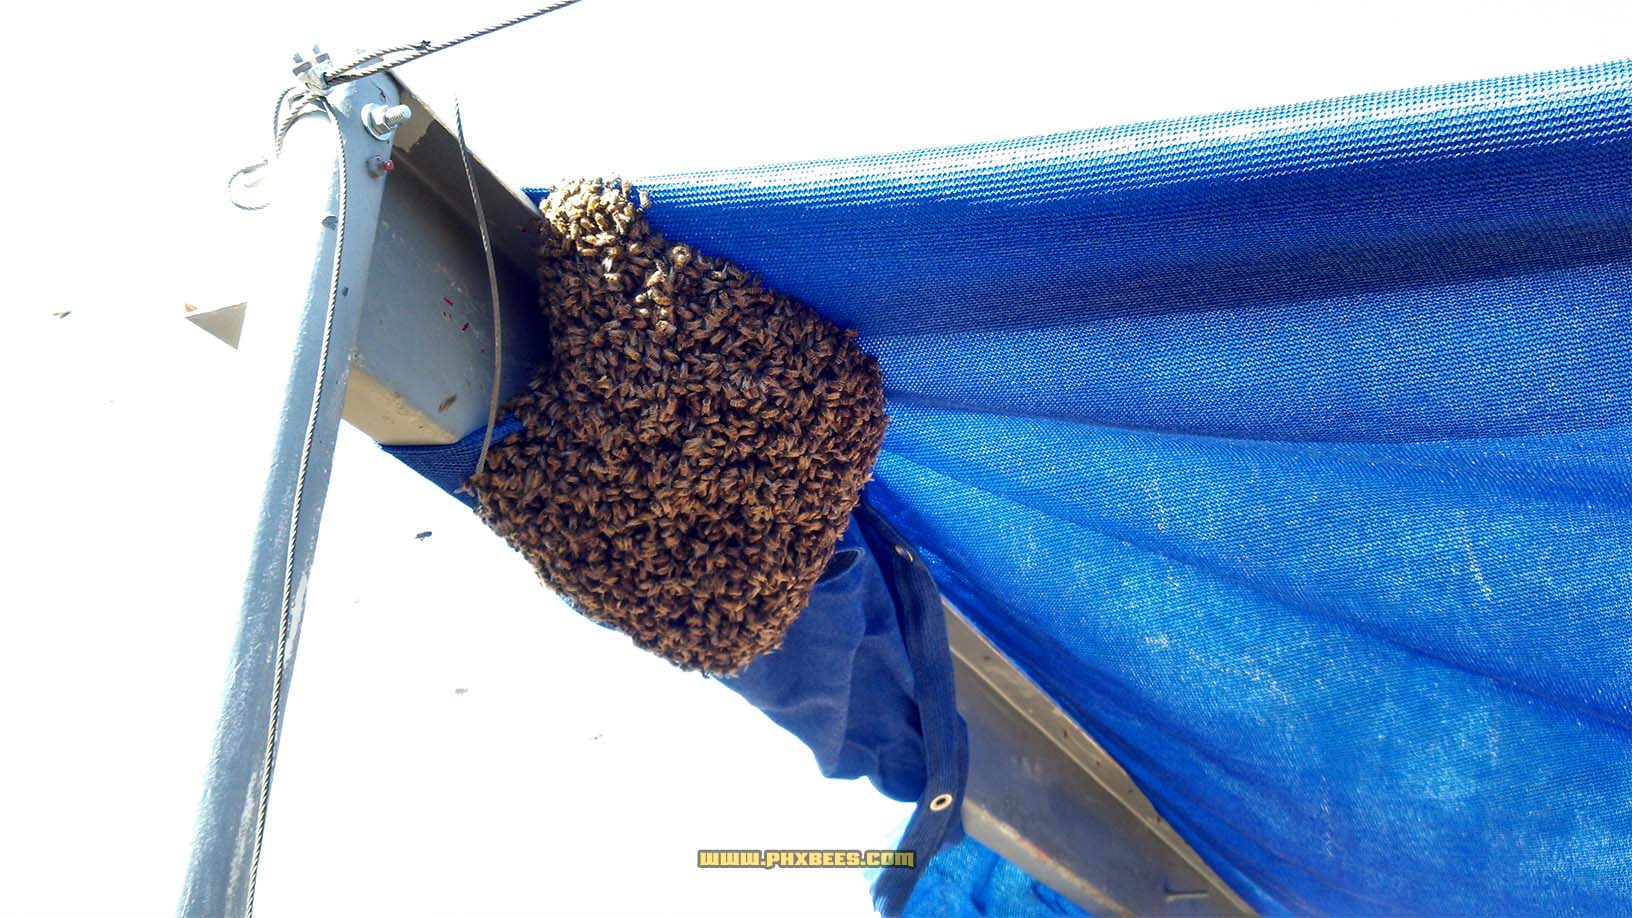 Bees settled on an awning